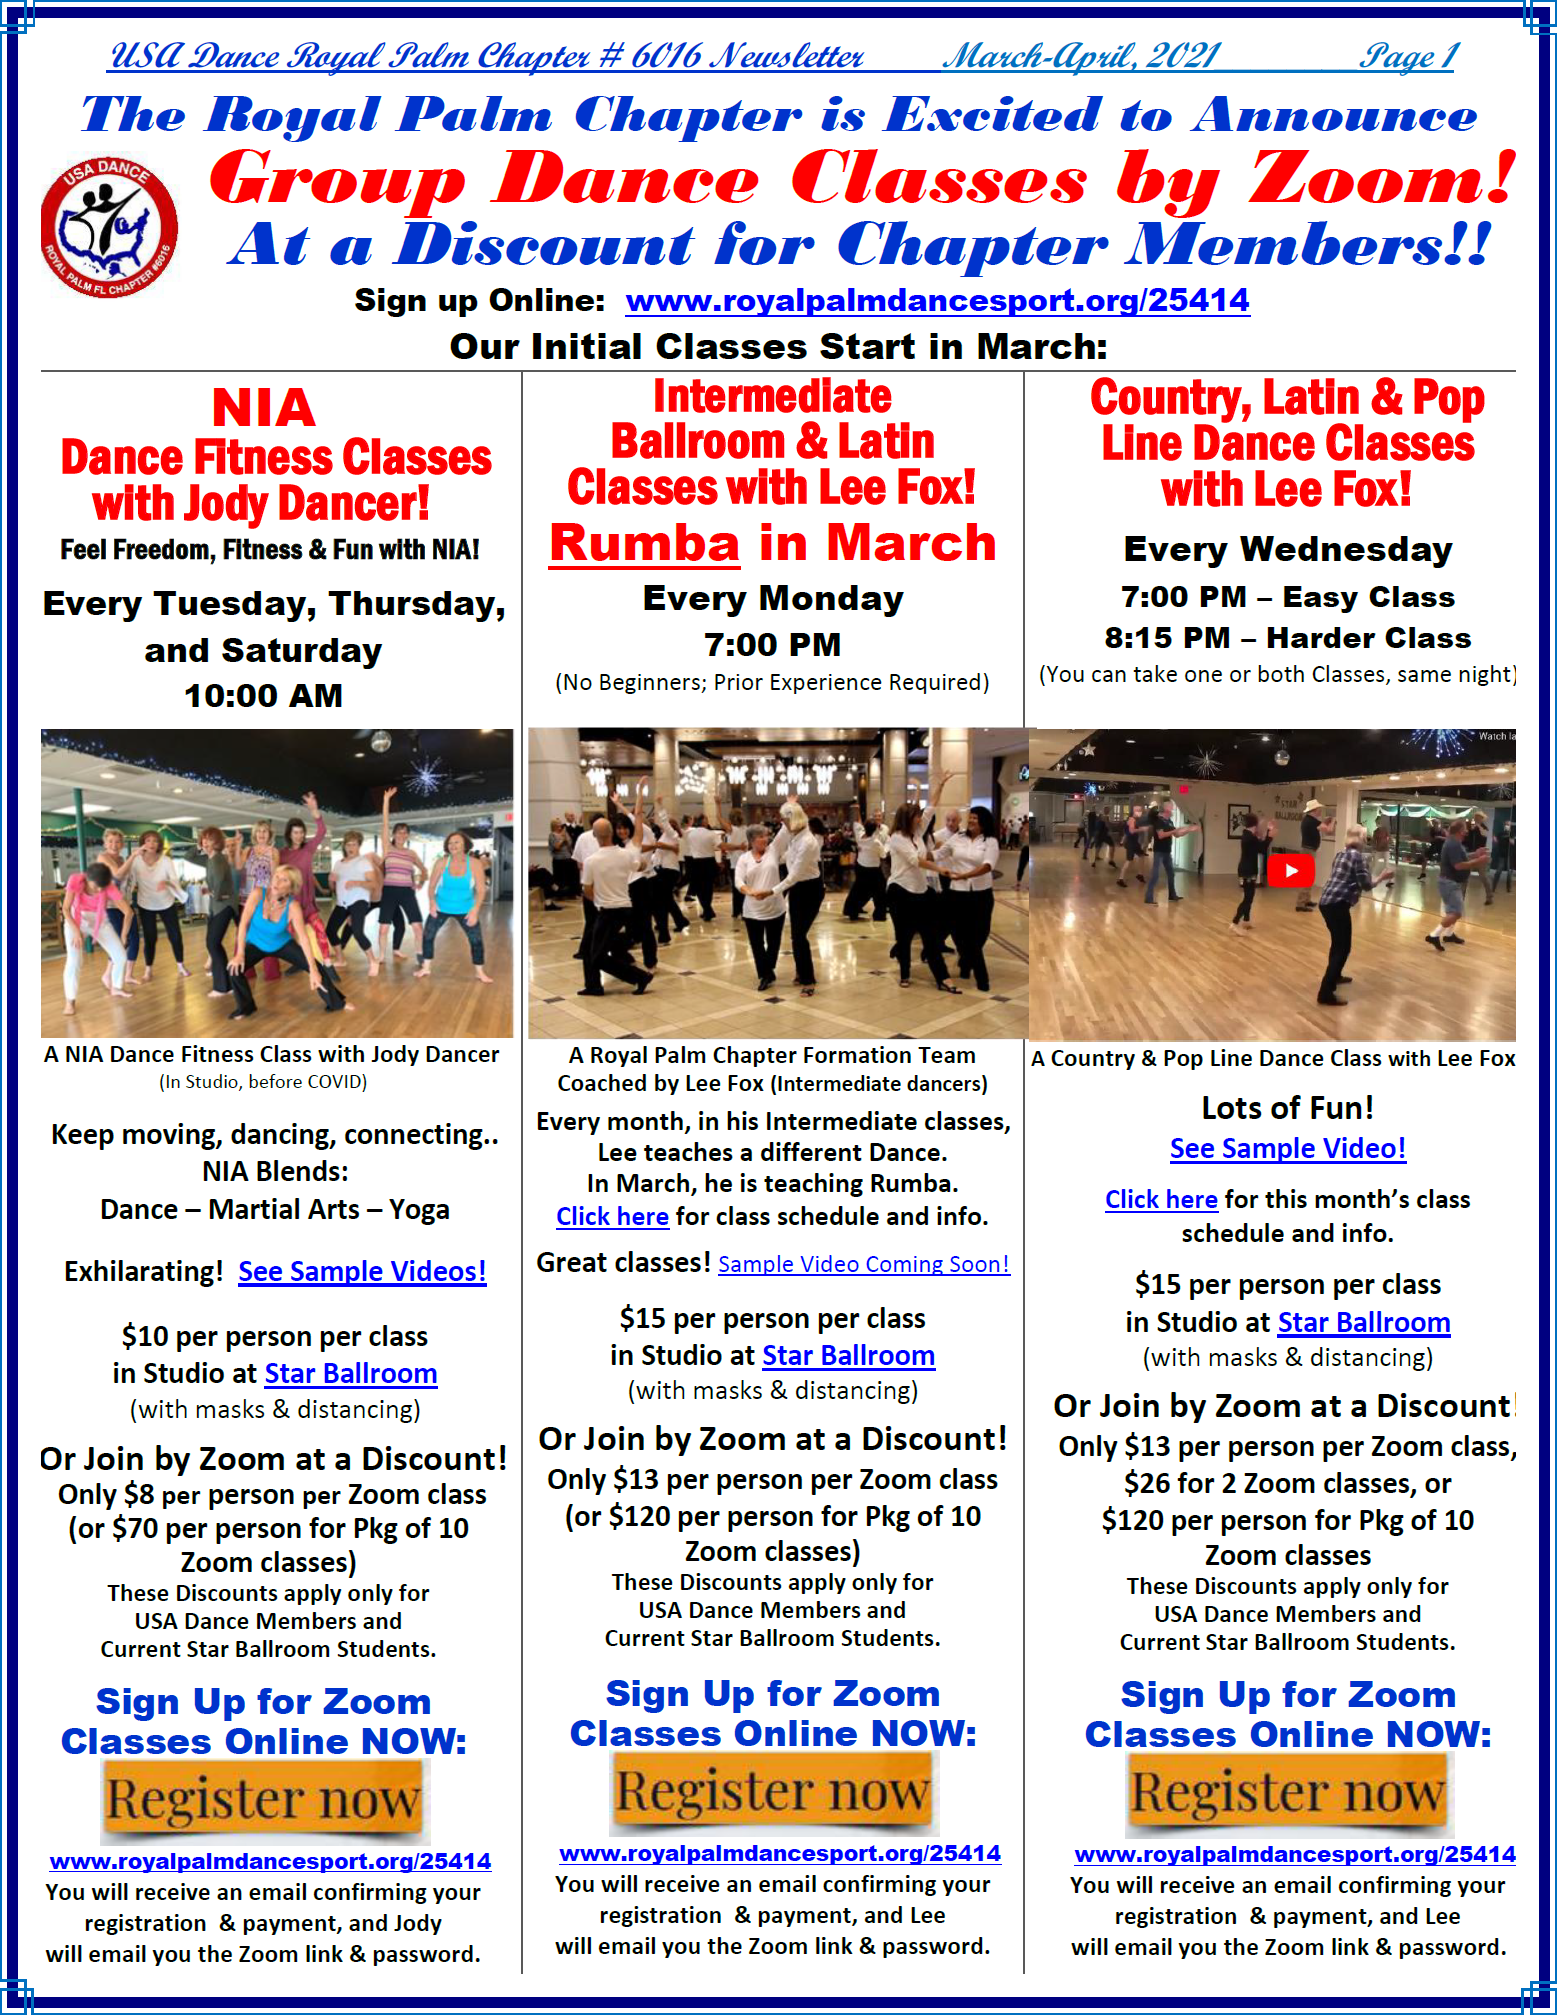 Zoom Classes starting in March, 2021 - Page 1 March-April, 2021 Royal Palm Chapter Newsletter